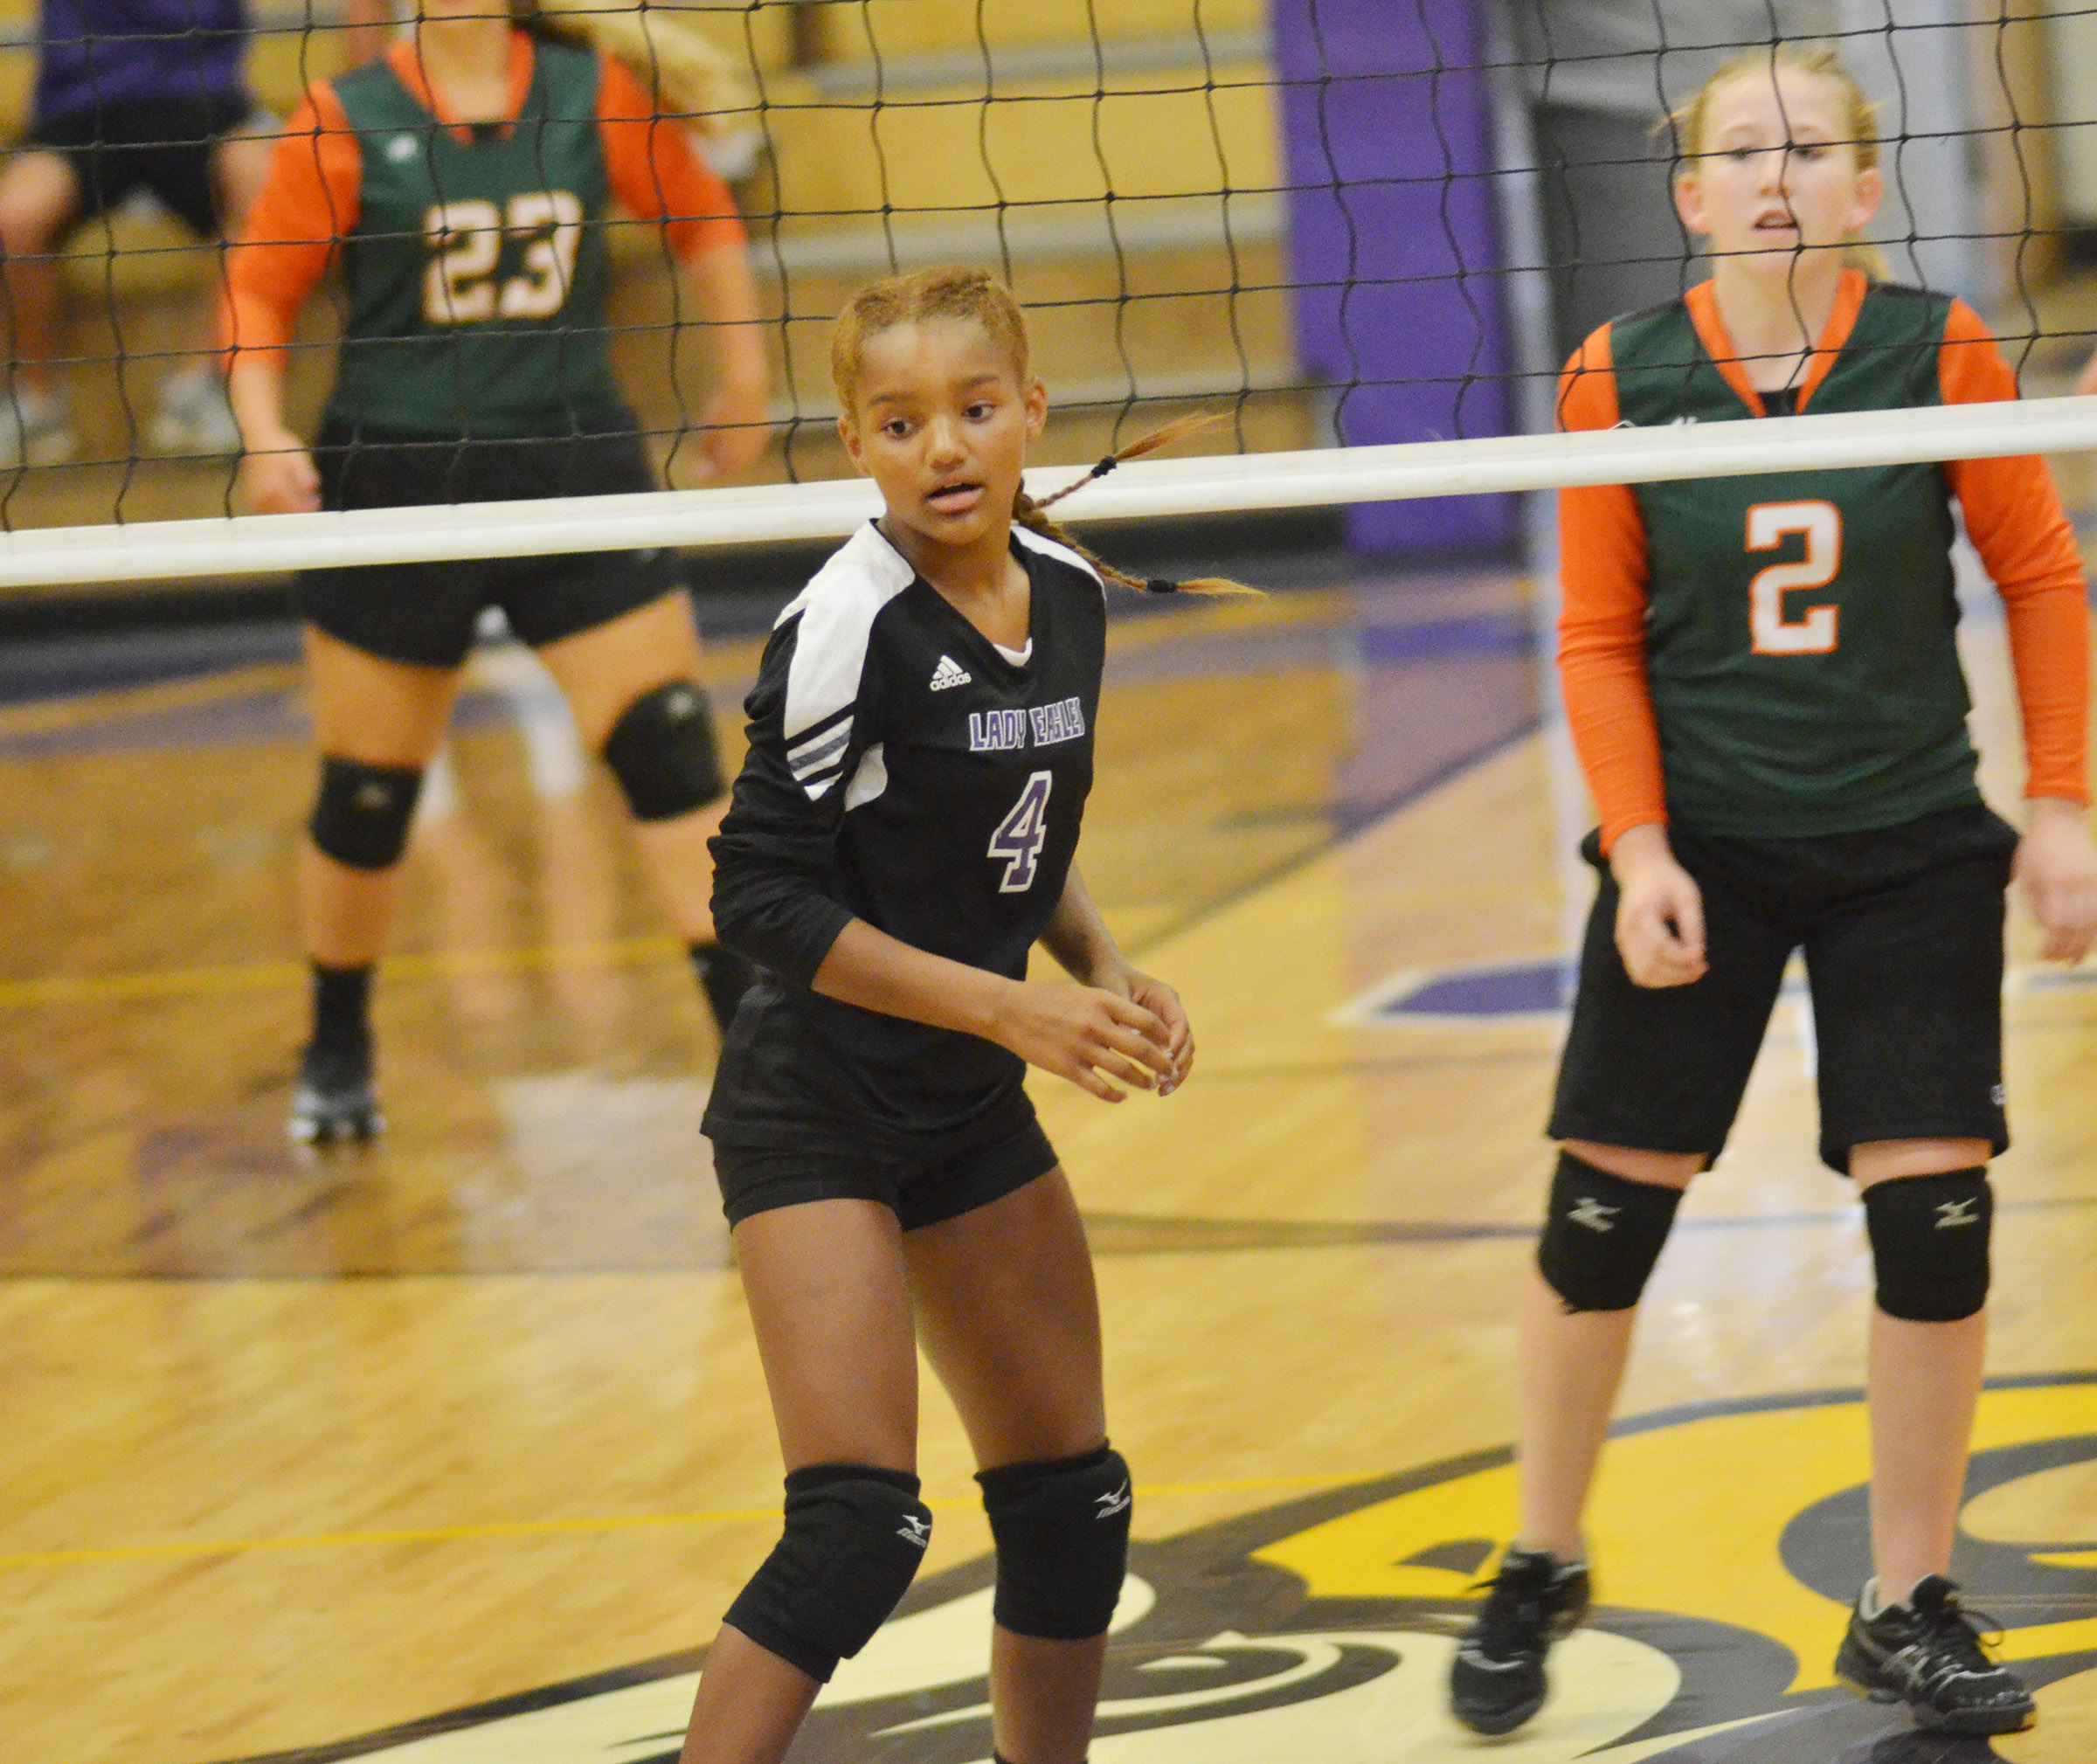 Campbellsville Middle School eighth-grader Alexis Thomas watches the ball.